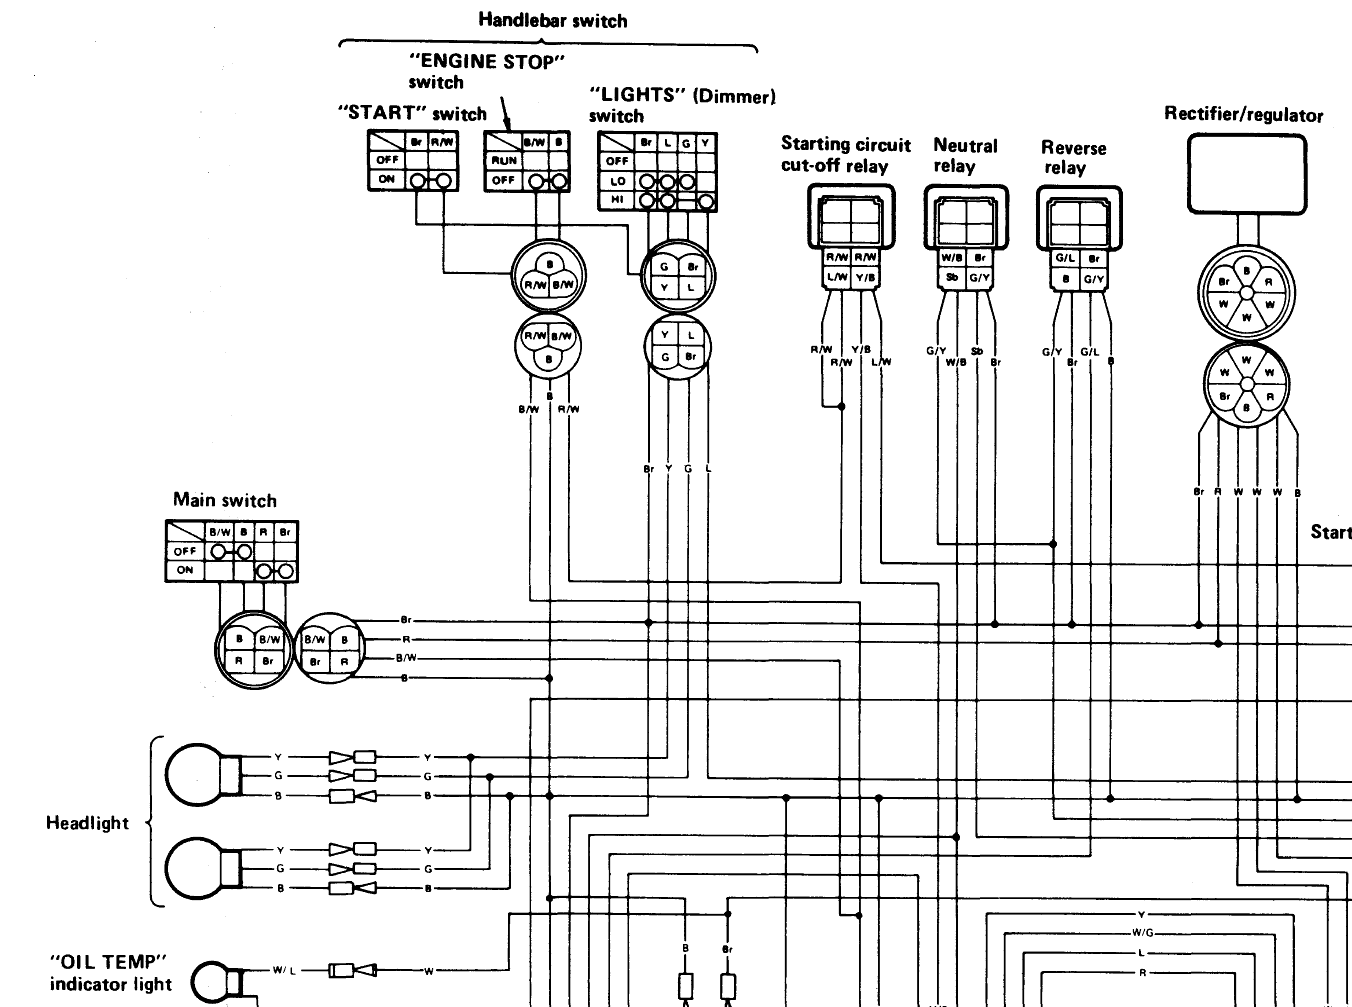 1995 yamaha kodiak wiring - wiring diagram tags hit-show -  hit-show.discoveriran.it  discoveriran.it